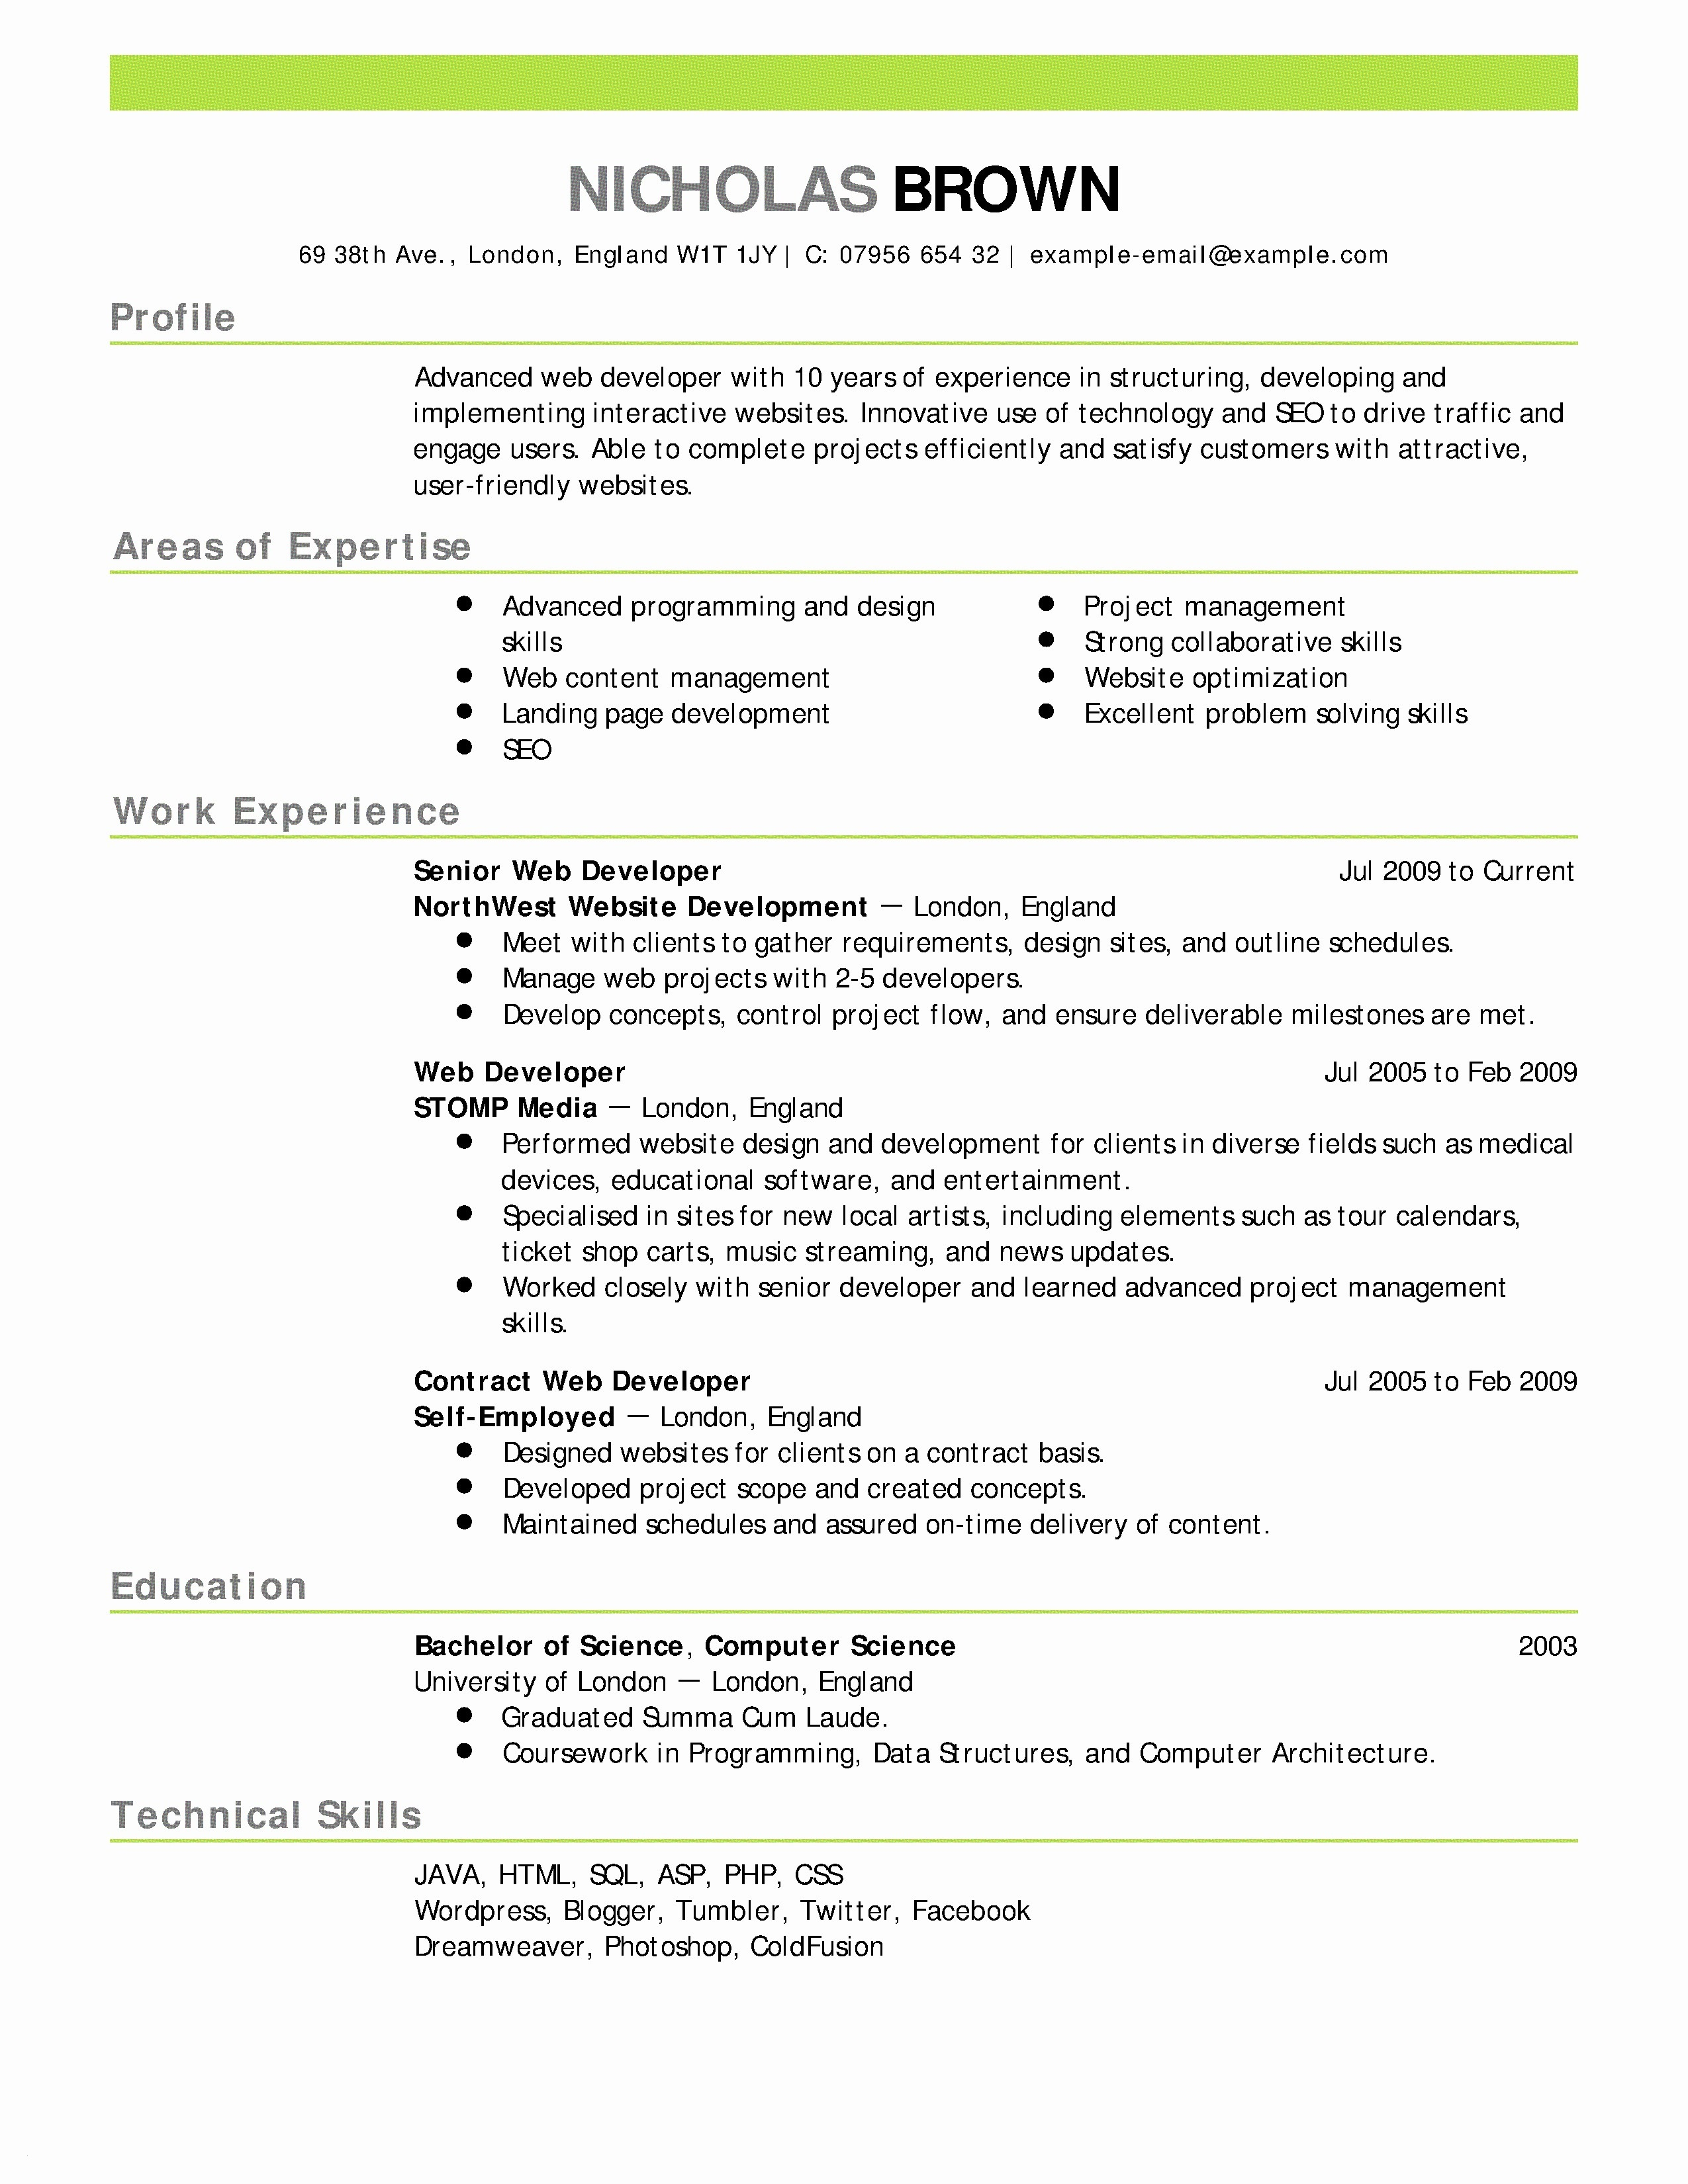 Resume Summary Ideas - Accounting Resume Objective Best Fresh Examples Resumes Ecologist